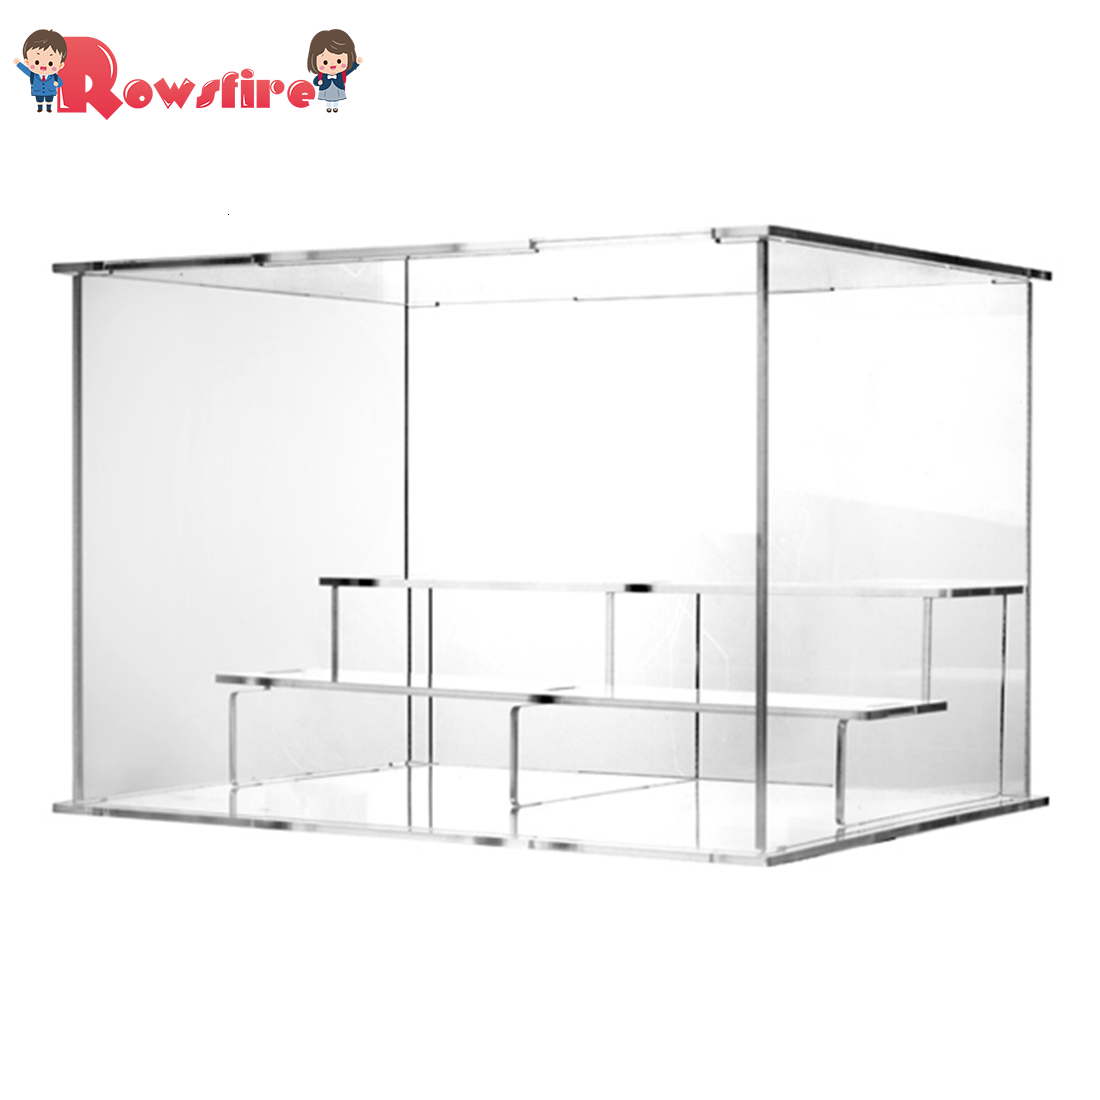 Acrylic Display Case Countertop Box Stand Dustproof Protection Showcase For Action Figures Toys Collectibles